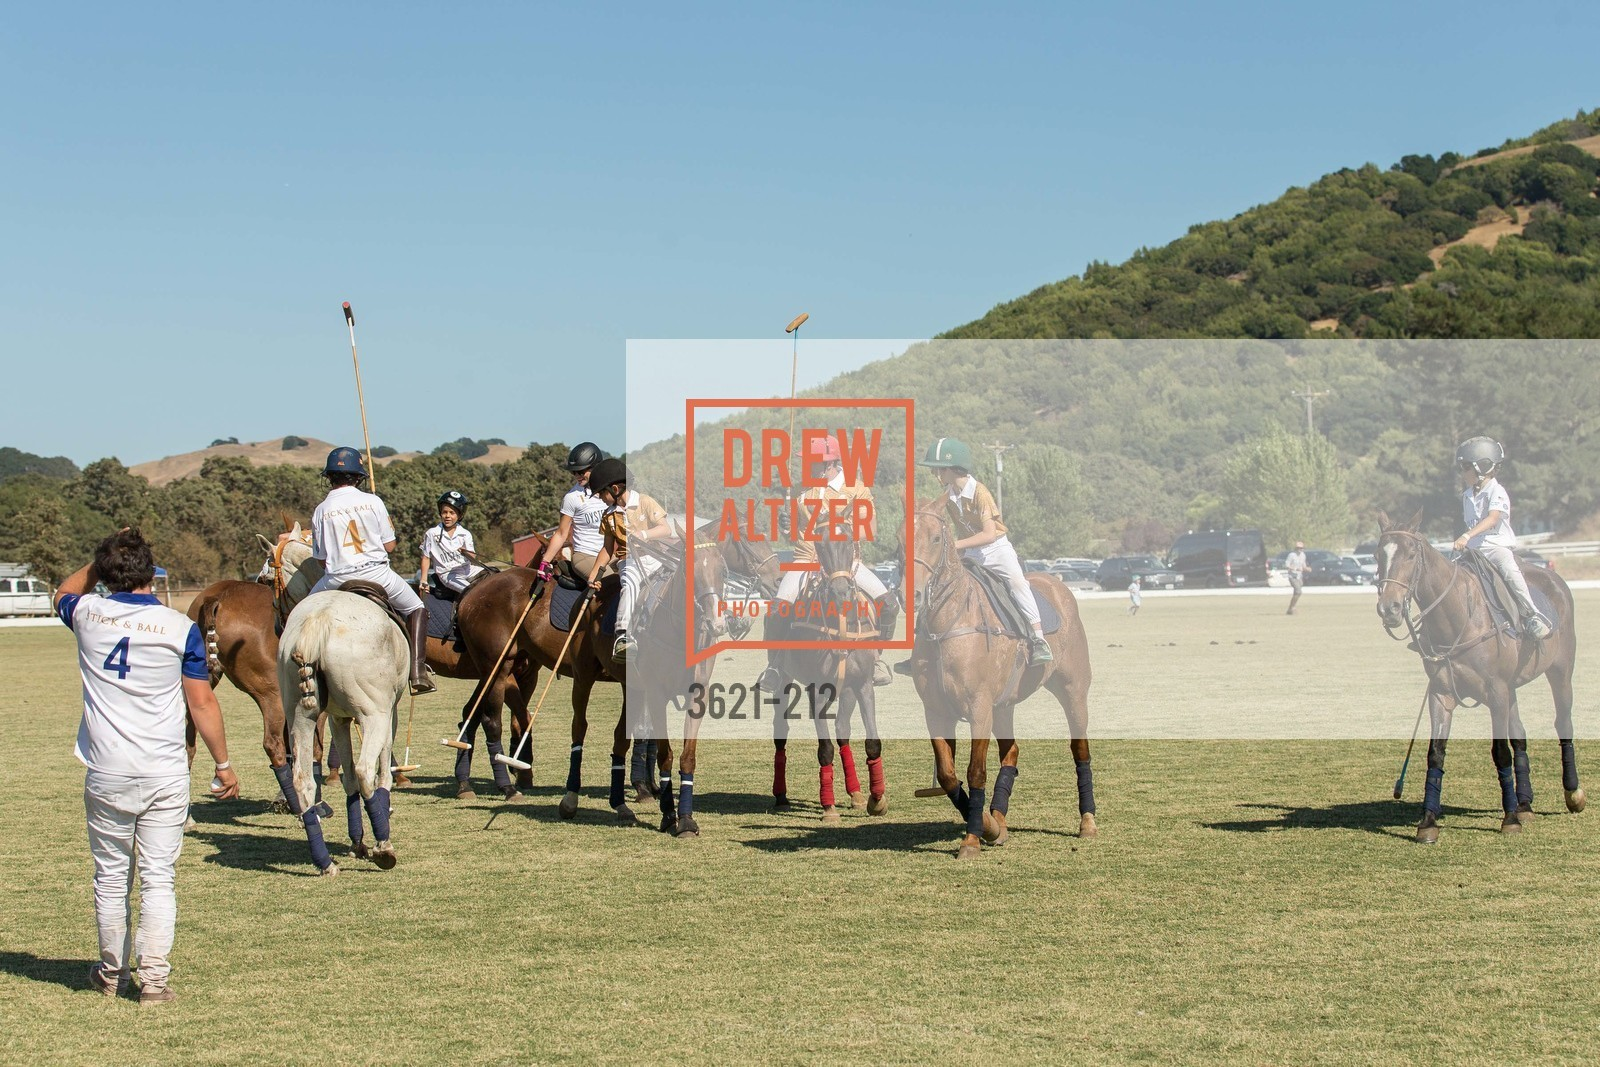 Polo Match, Photo #3621-212